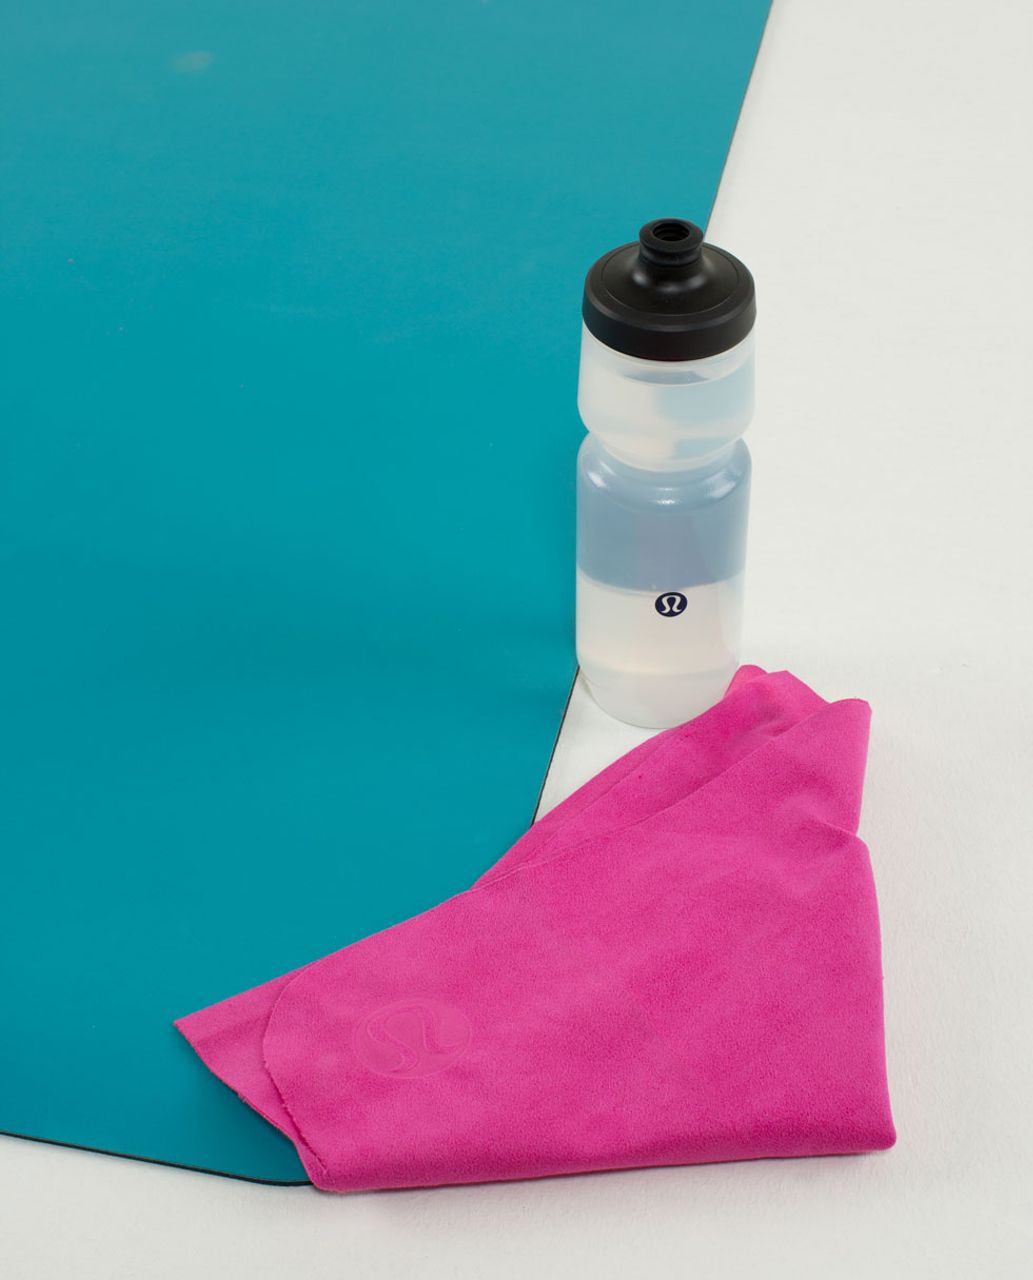 Lululemon The (Small) Towel - Paris Perfection